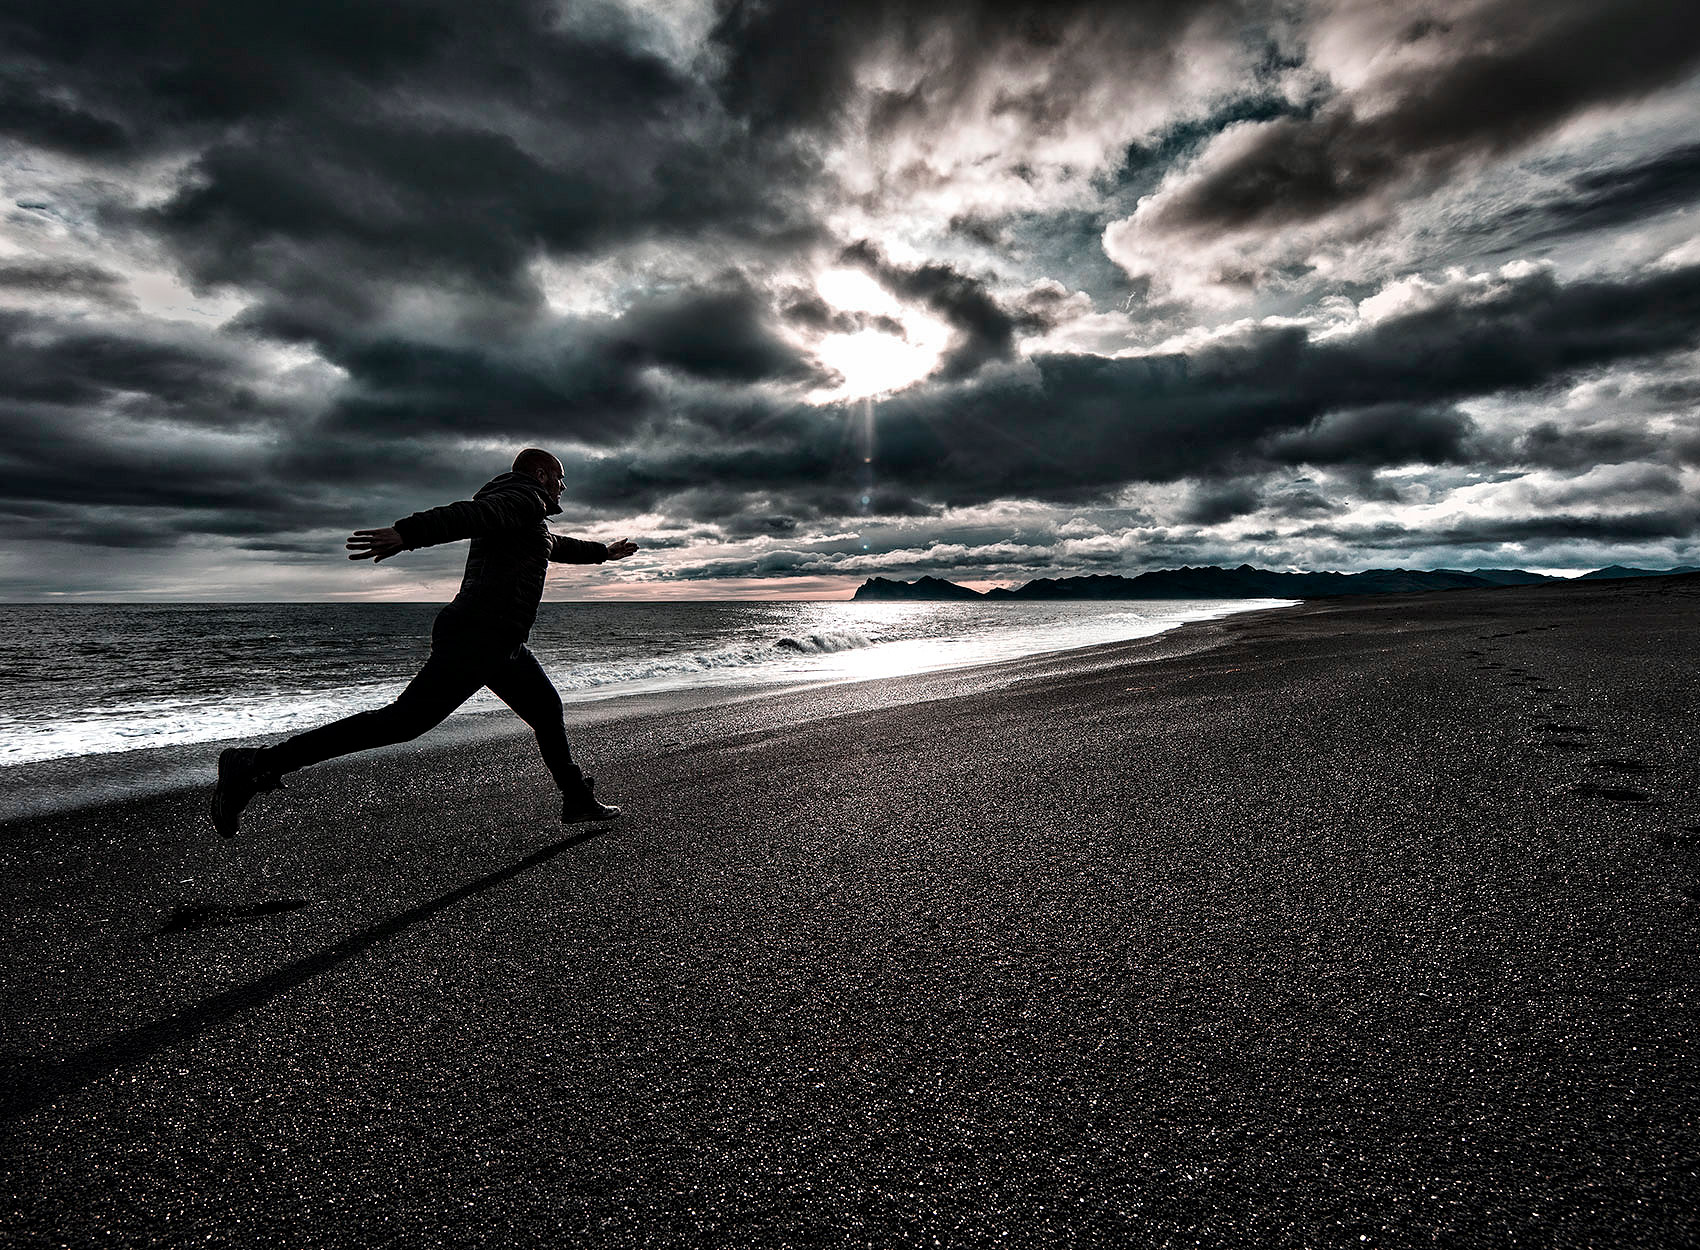 a man runs on an icelandic volcanic beach during an early fall sunset